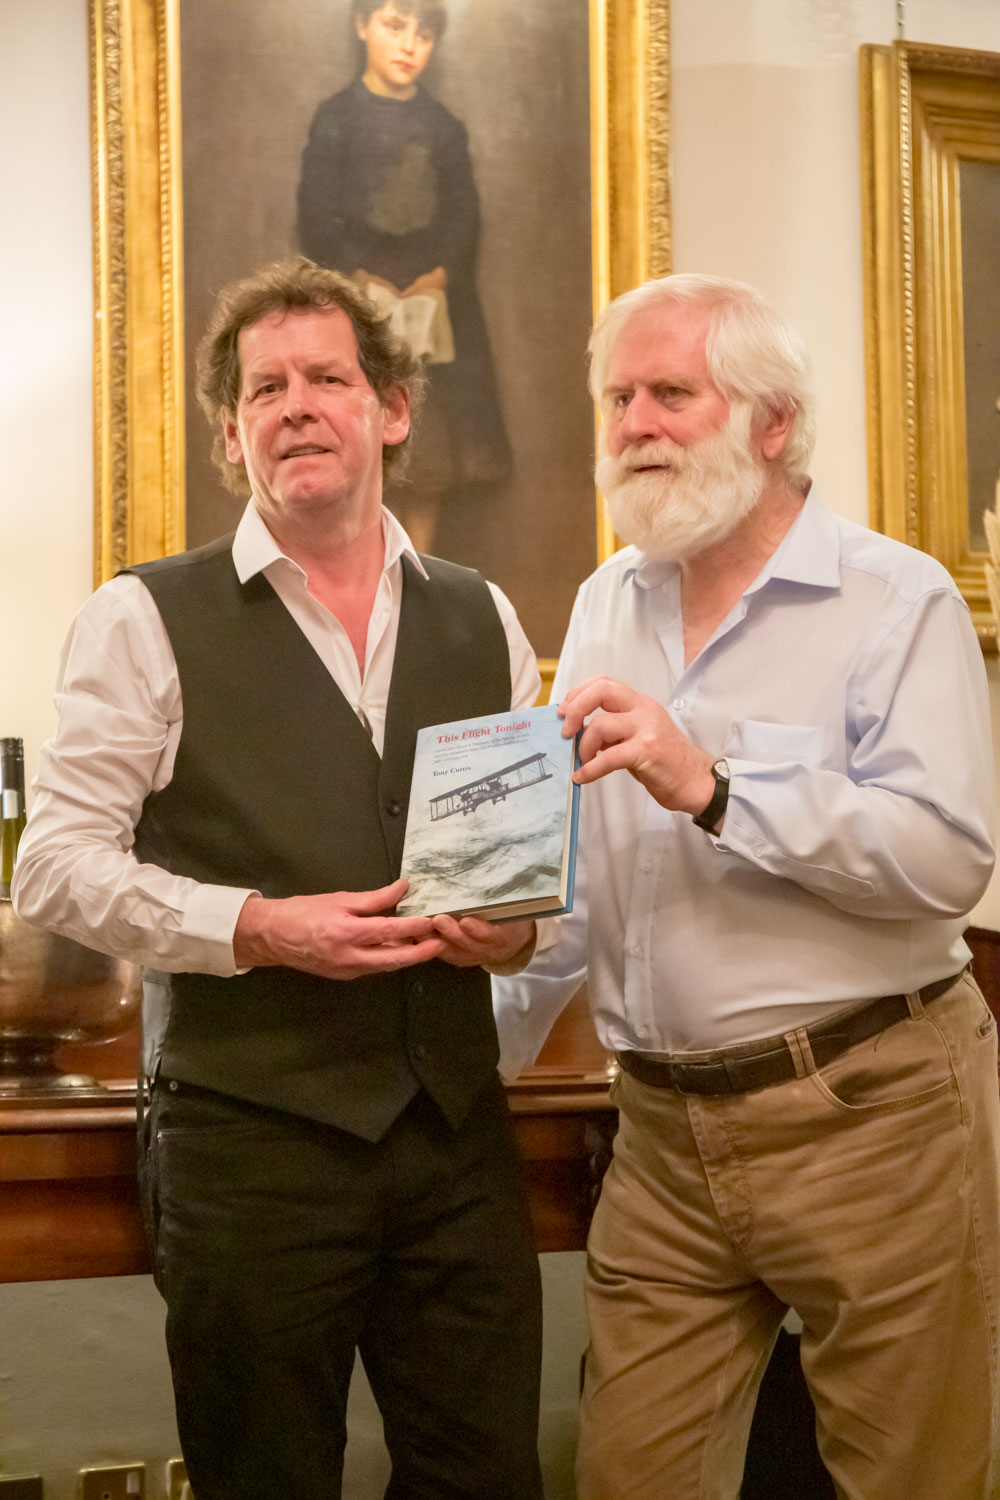 Tony Curtis with John Sheahan, who supplied the wonderful music at the event - and This Flight Tonight